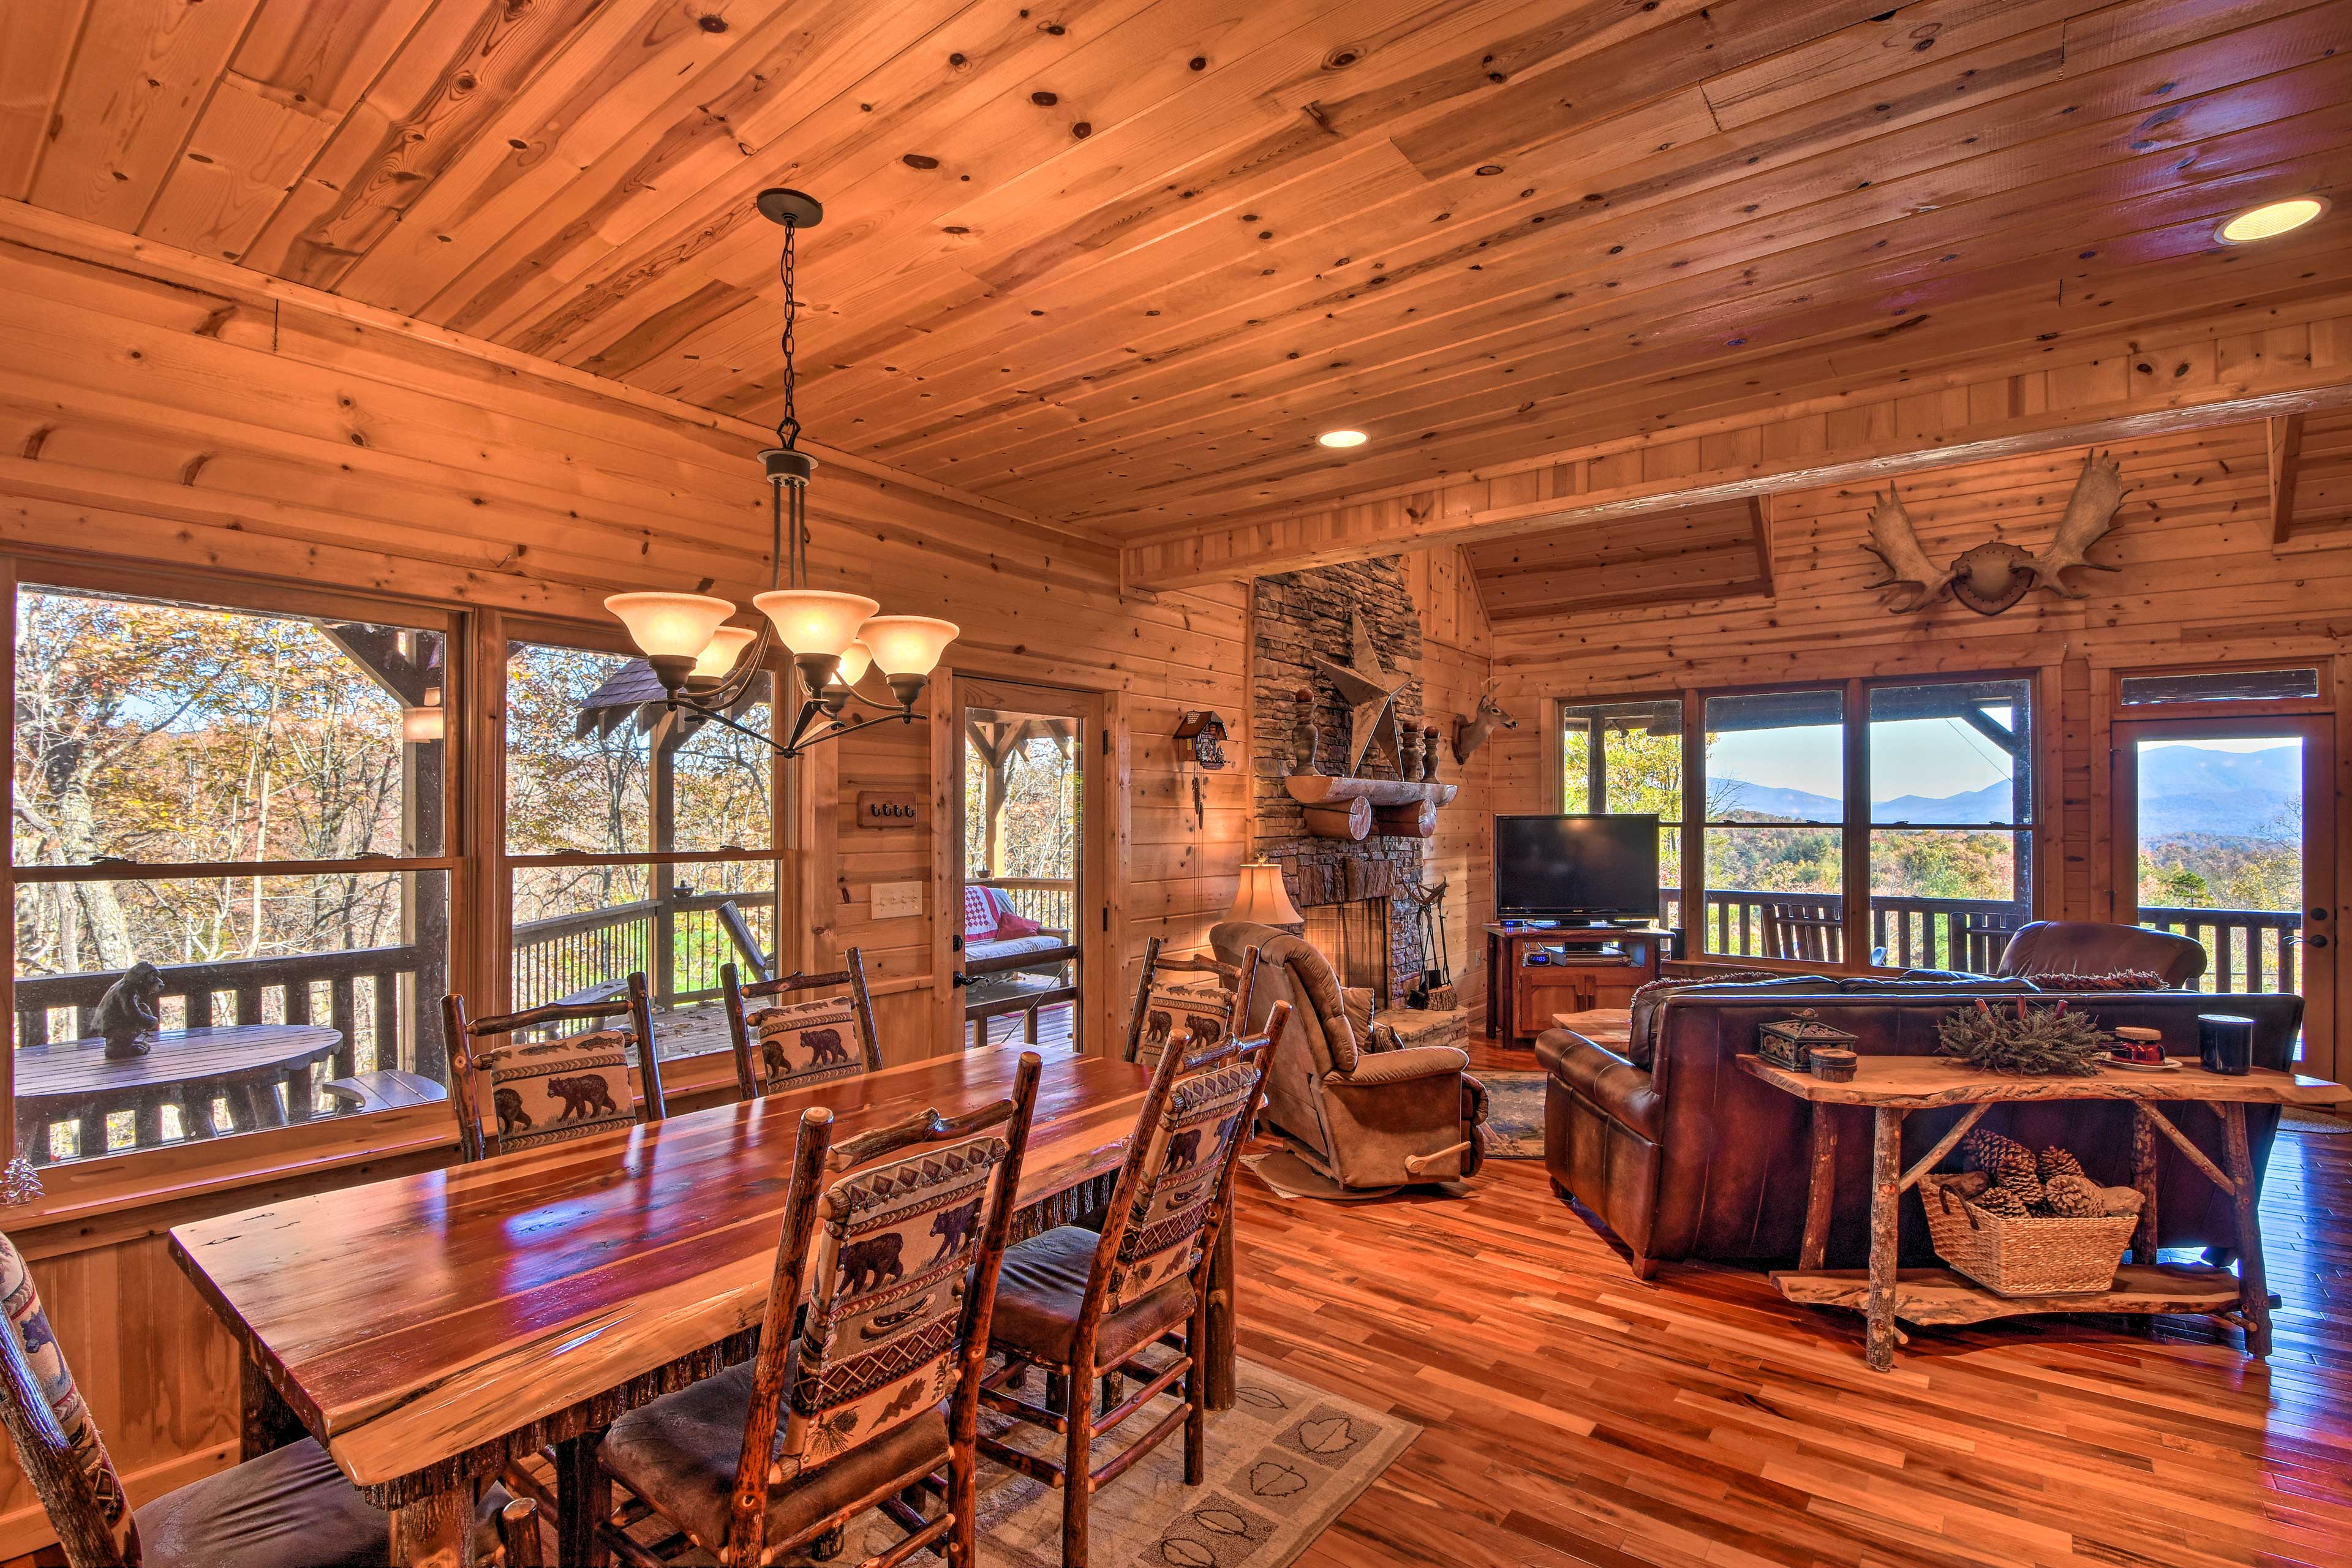 Welcome to your Georgia mountain home-away-from-home!